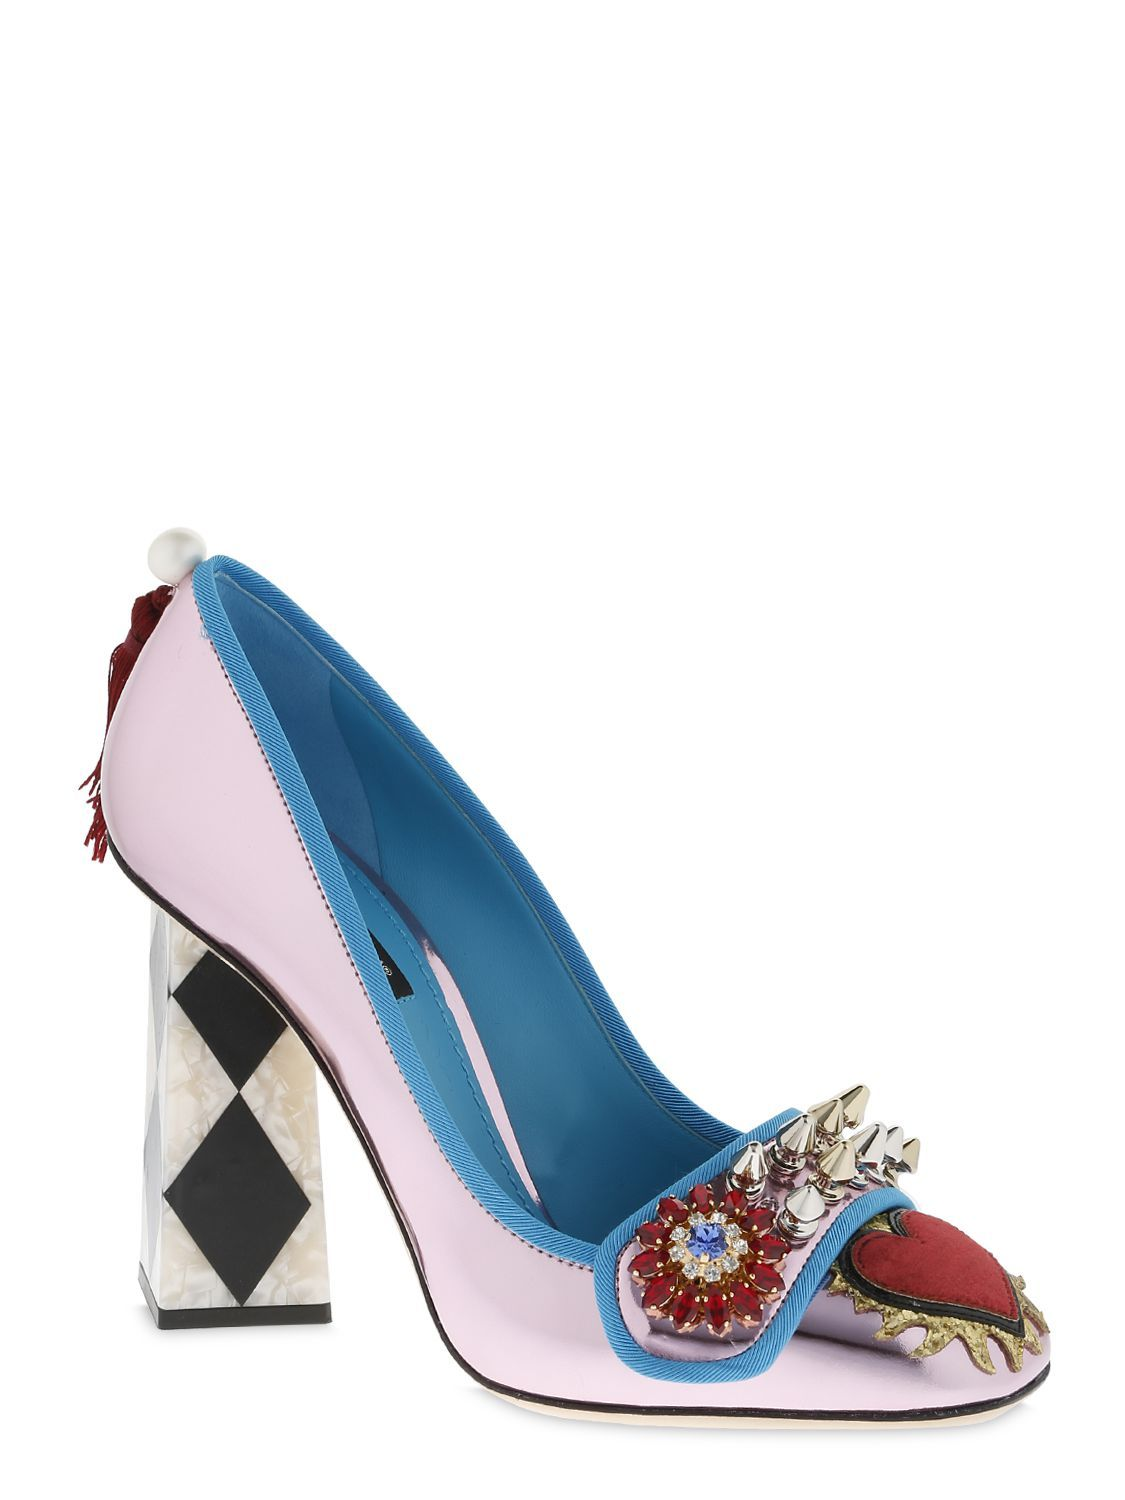 Dolce & Gabbana 100MM EMBELLISHED MIRROR LEATHER PUMPS